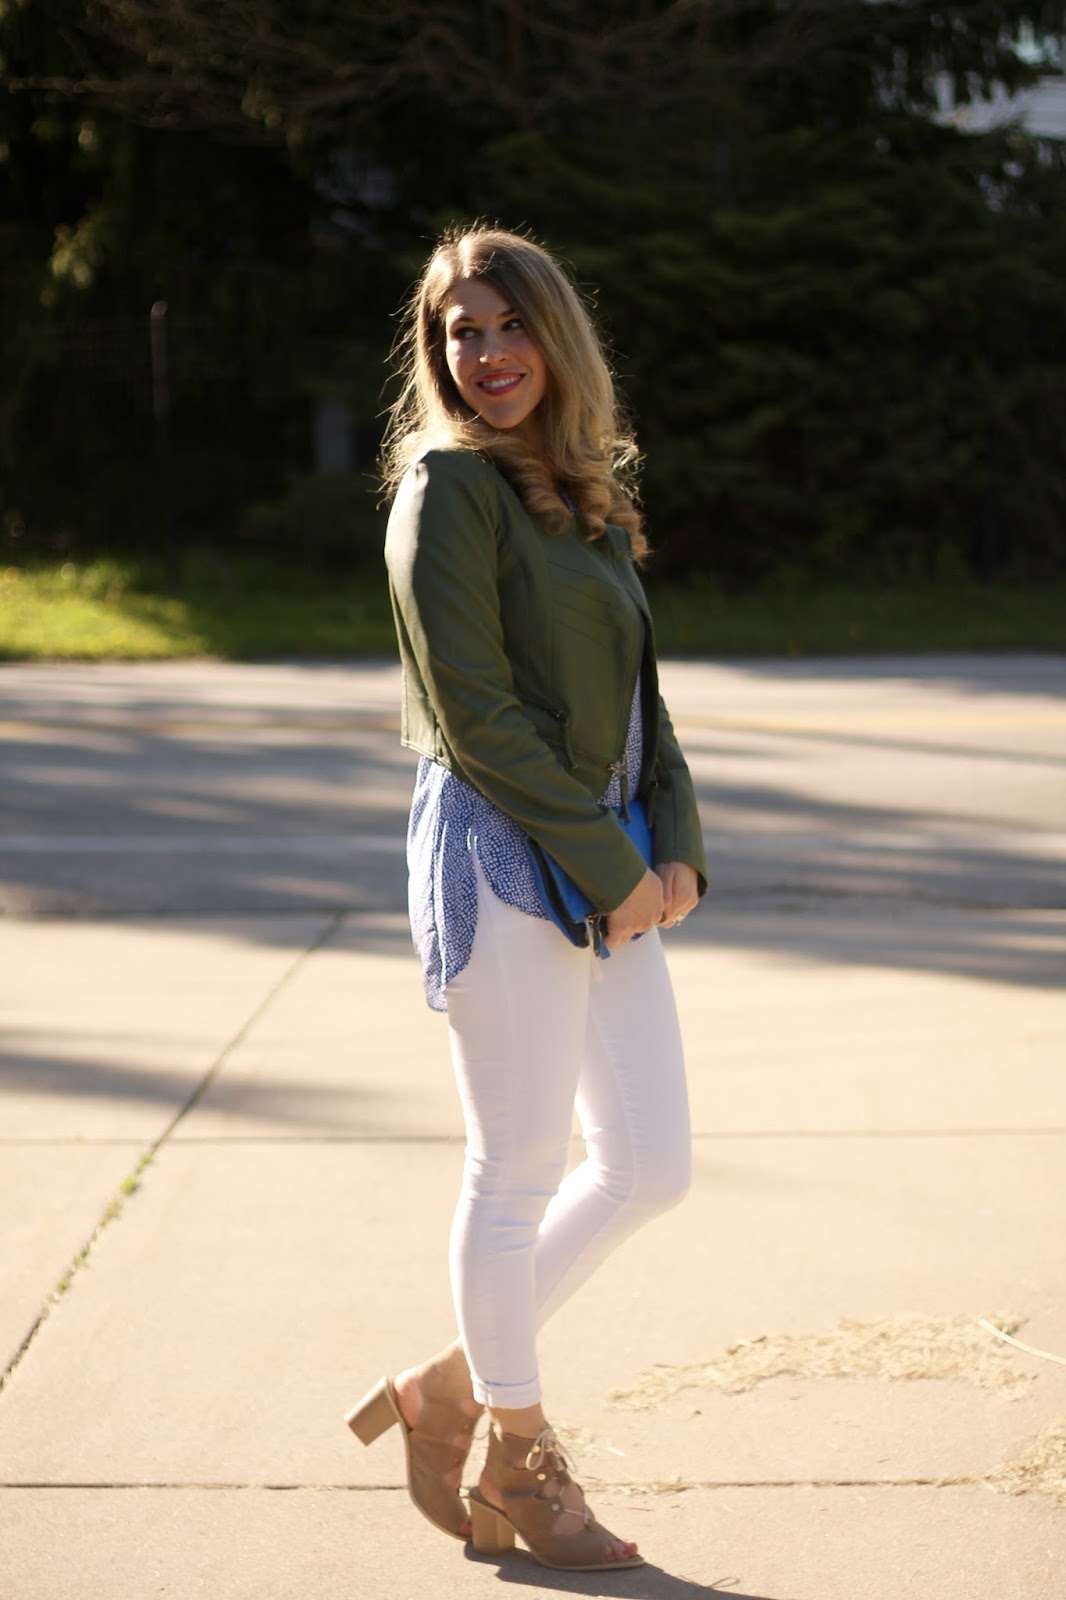 Stylus 3/4 sleeve peasant shirt blue geo, white jeans, olive green moto jacket, lace up sandals, Clare V. clutch, casual spring outfit